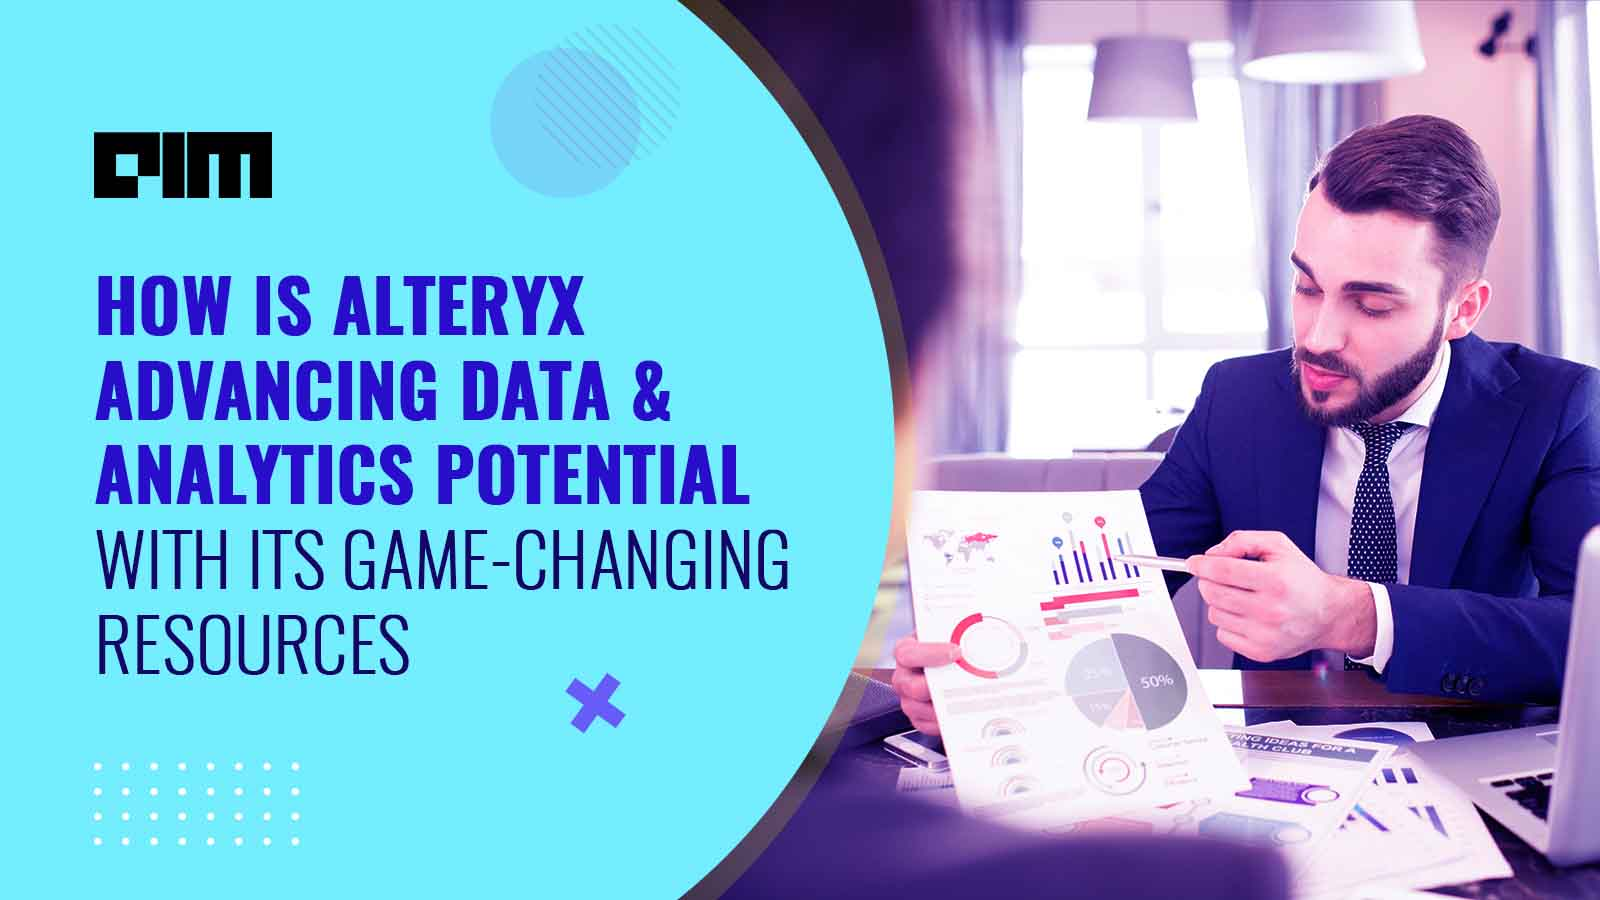 How Is Alteryx Advancing Data & Analytics Potential With Its Game-changing Resources